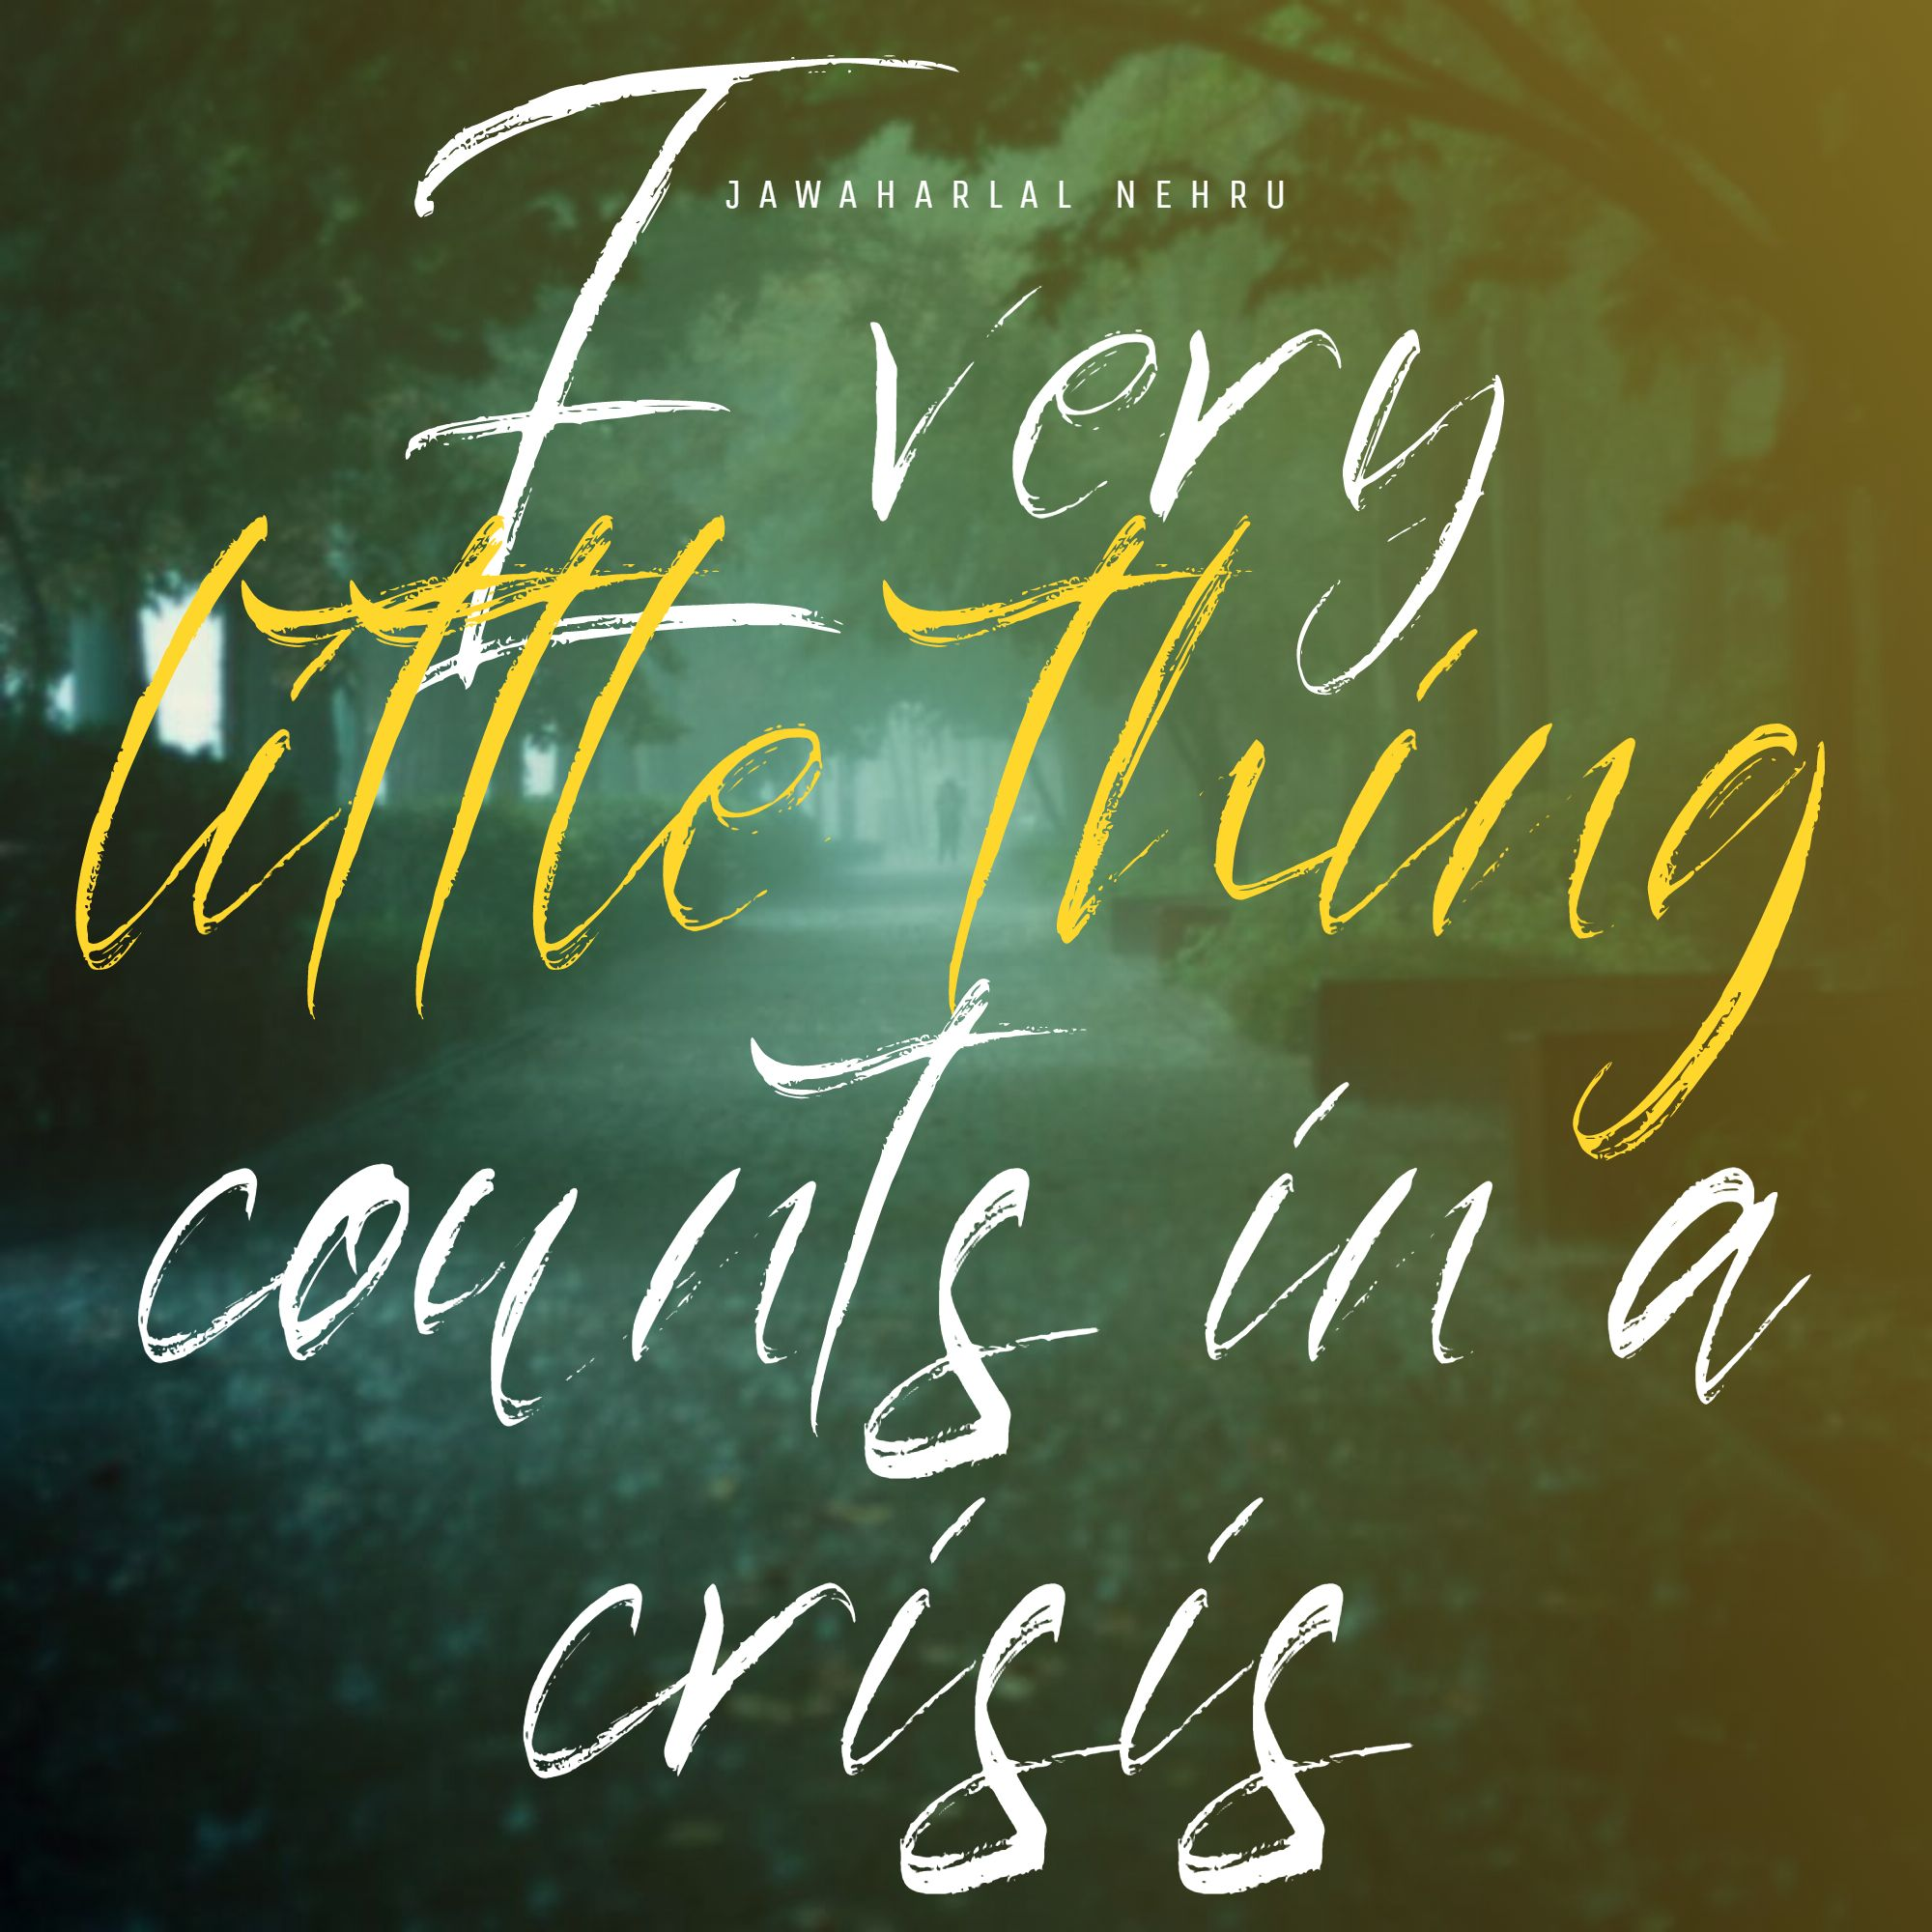 Quotes image of Every little thing counts in a crisis